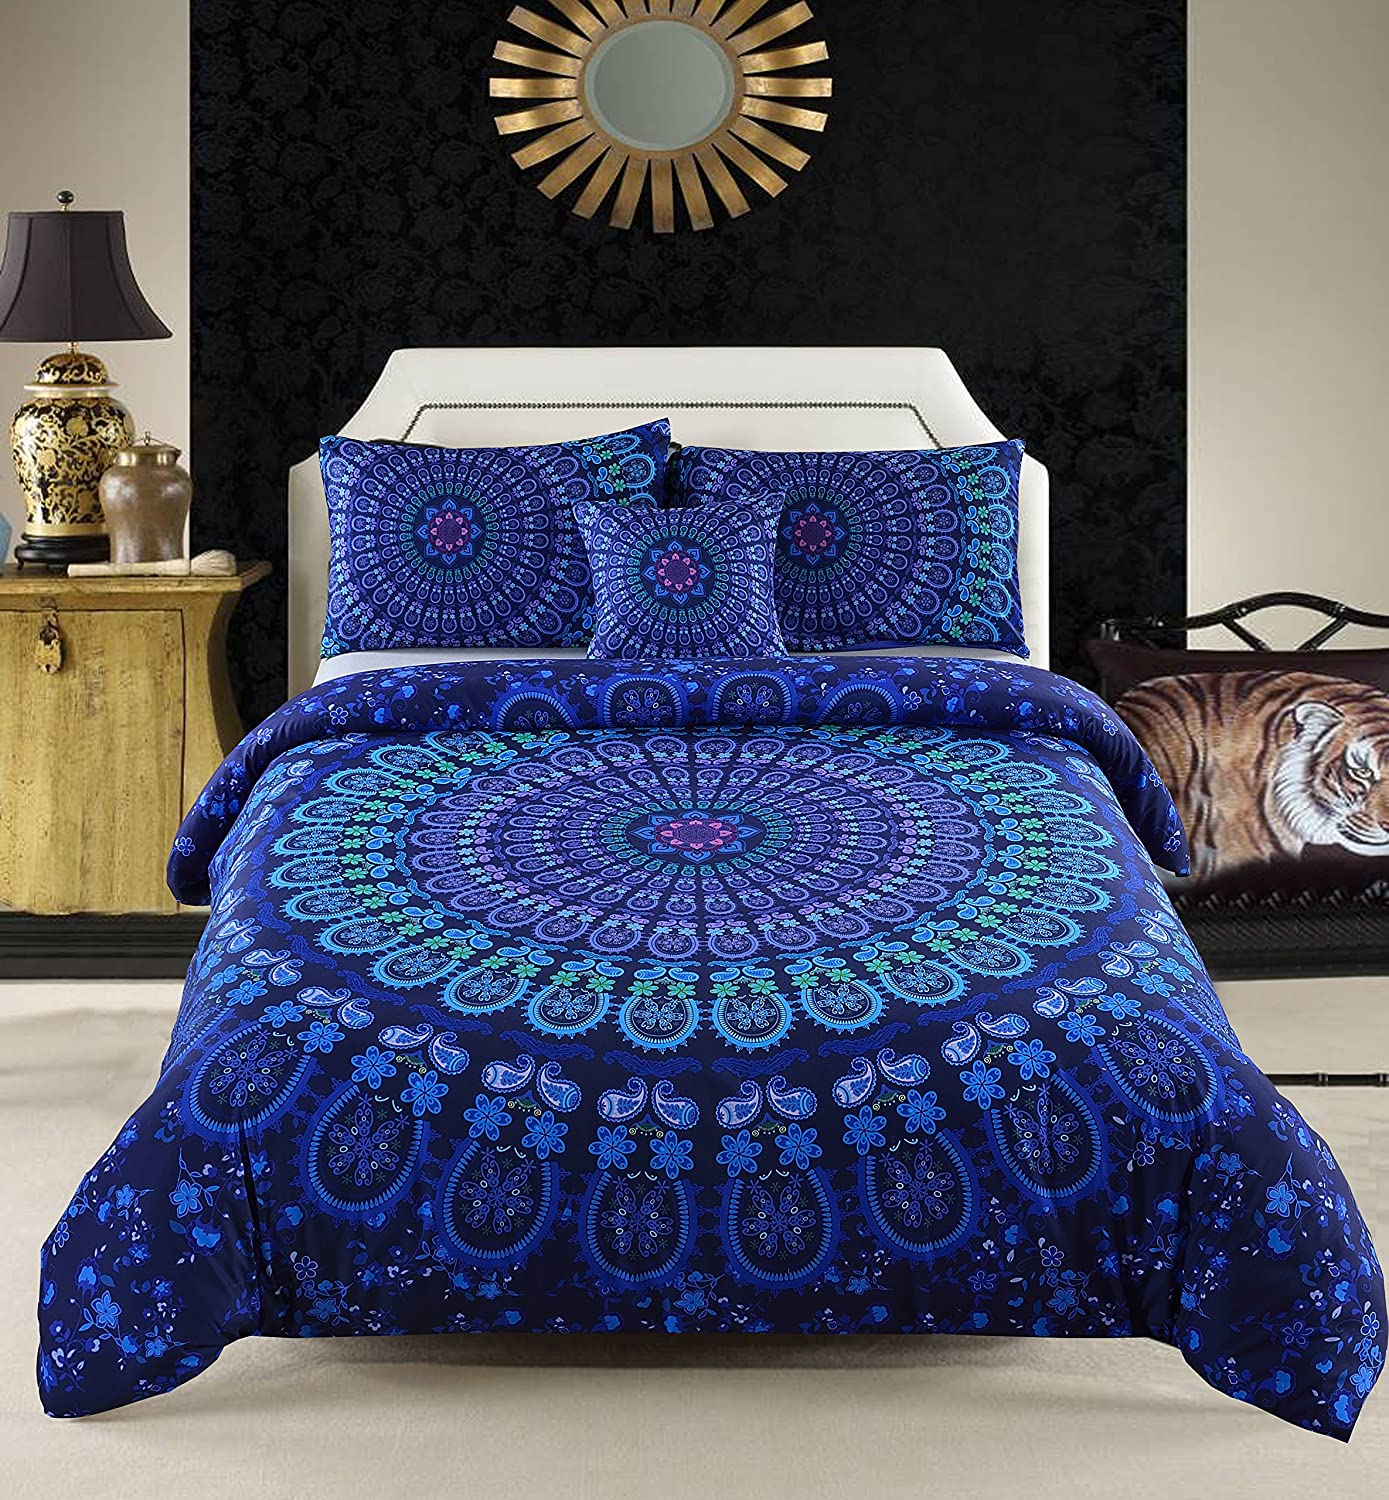 MeiLa 4 Pcs Luxury Soft Microfiber Bedclothes Plain Twill Boho Bohemian Duvet Cover Set Mandala Pattern Bedding Sets King